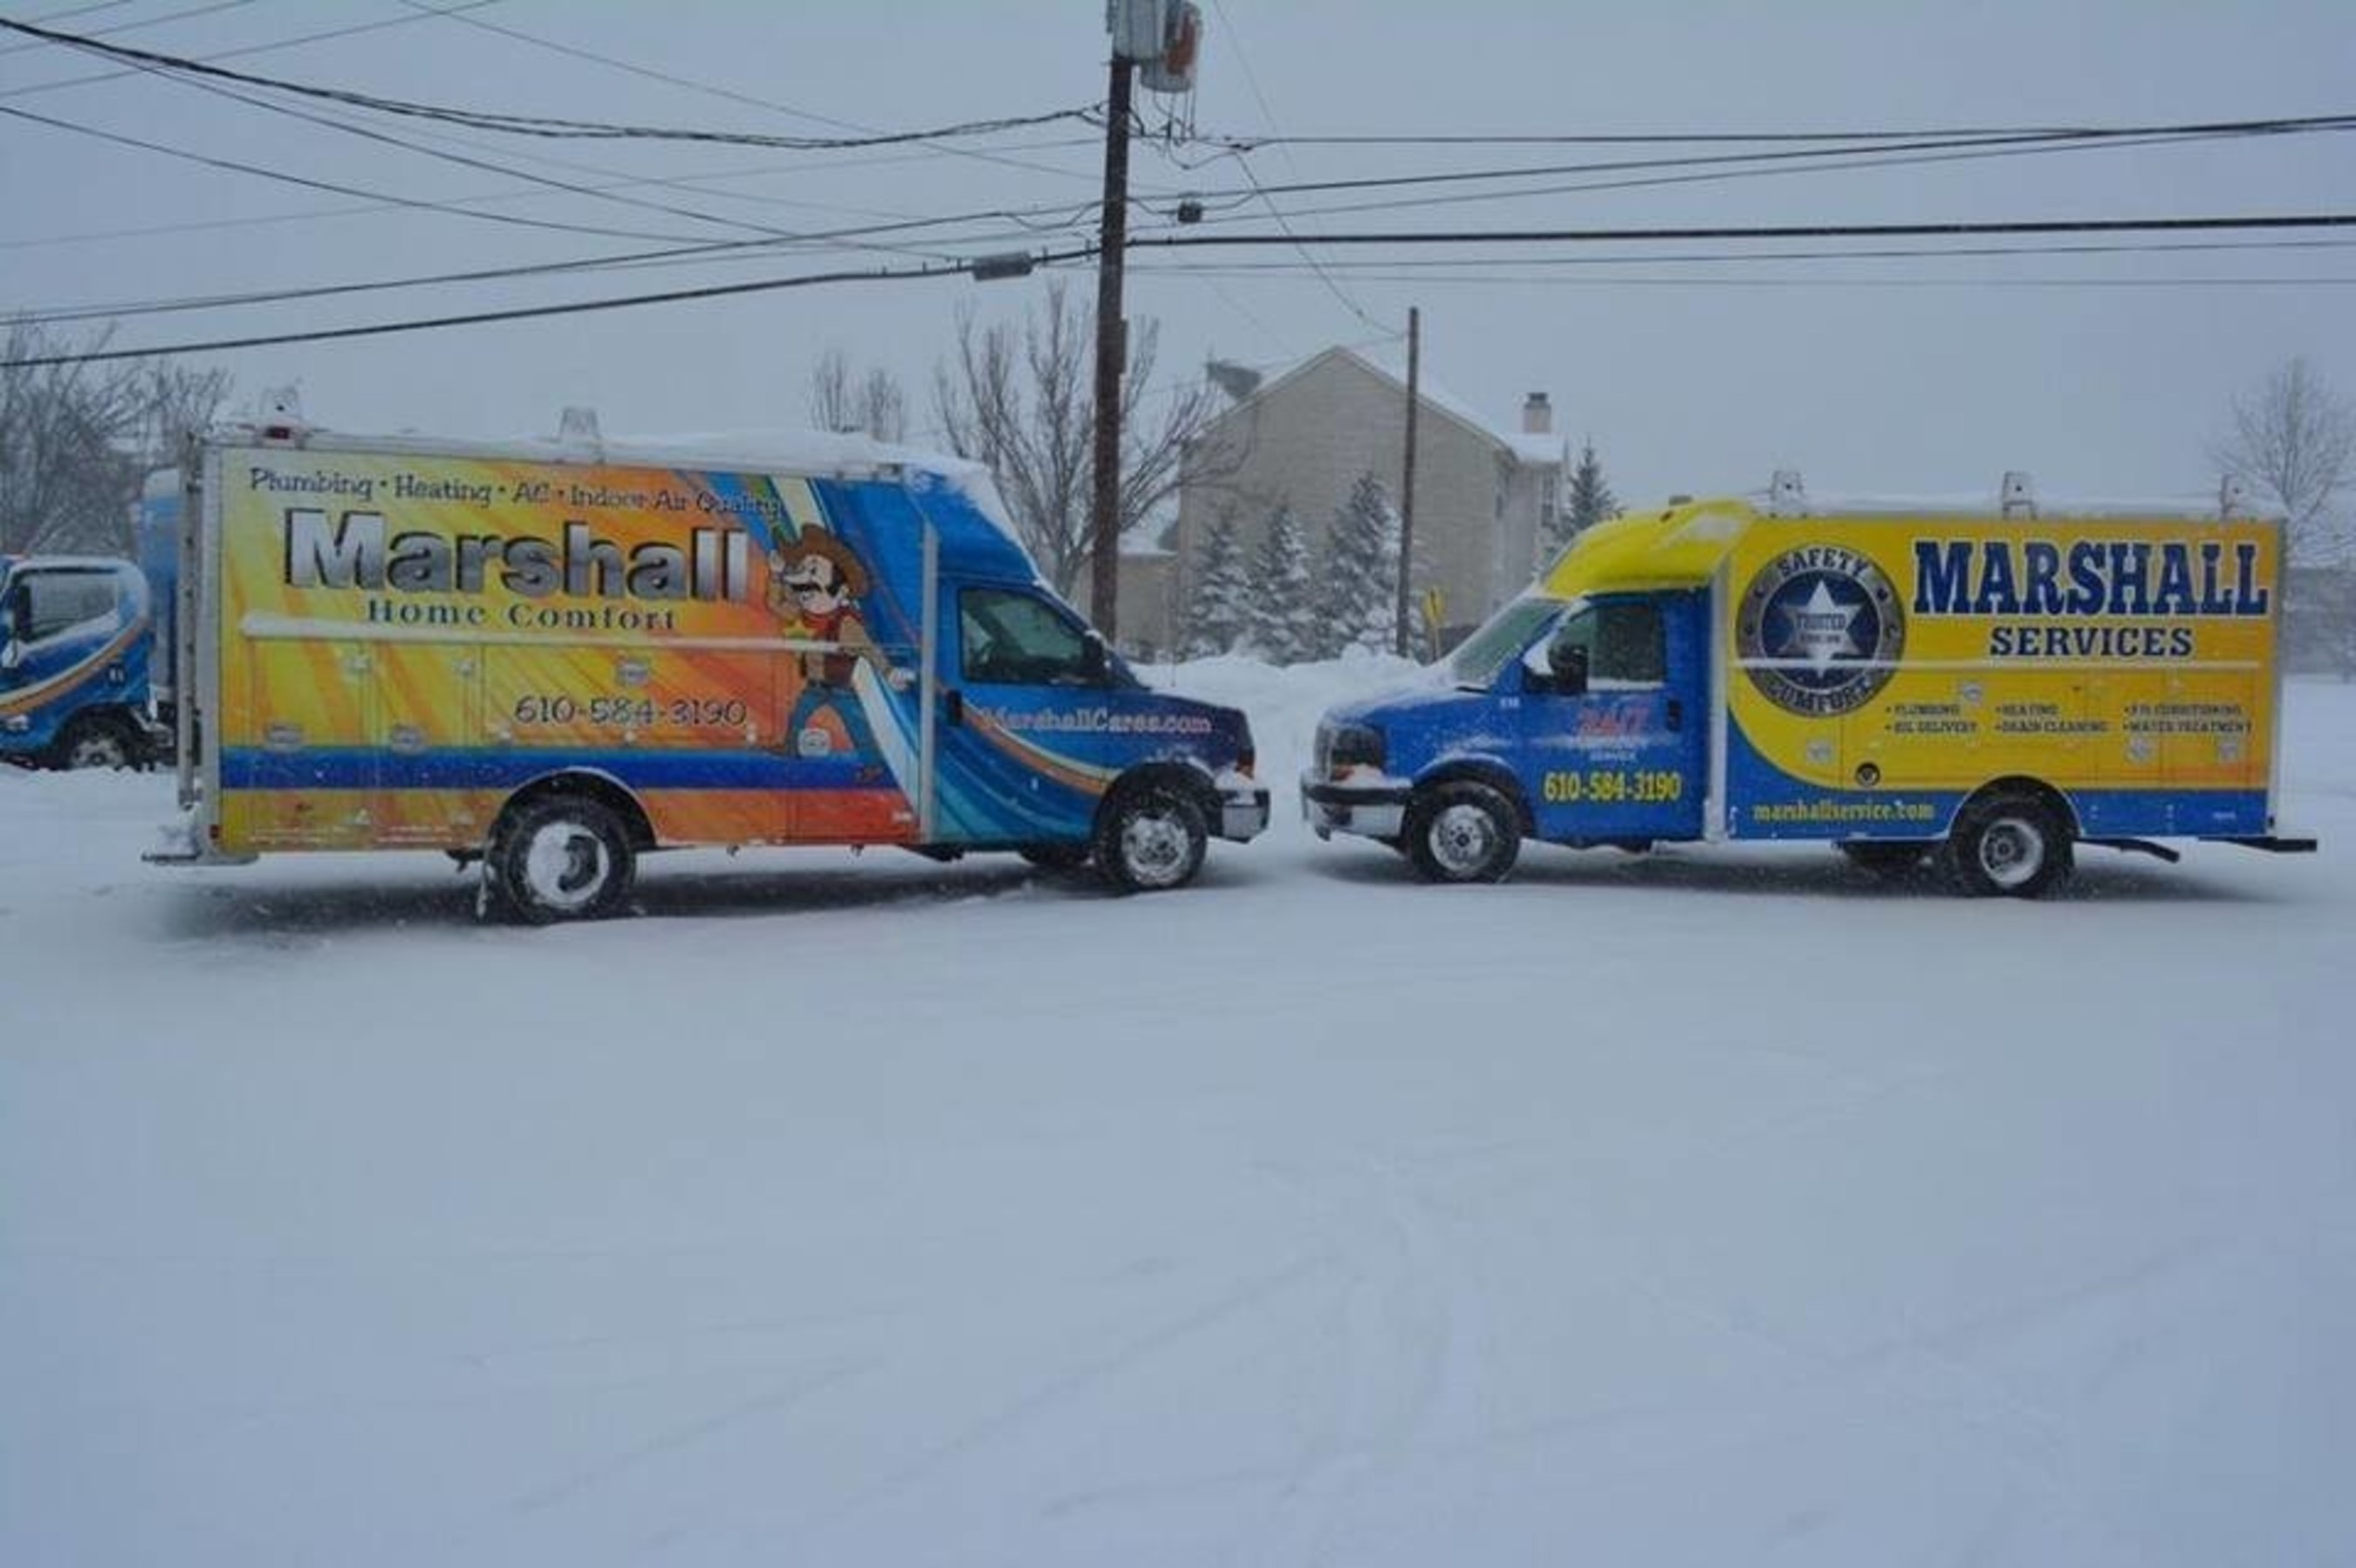 Marshall Home Comfort Extends Lowest Oil Prices for Heating Oil